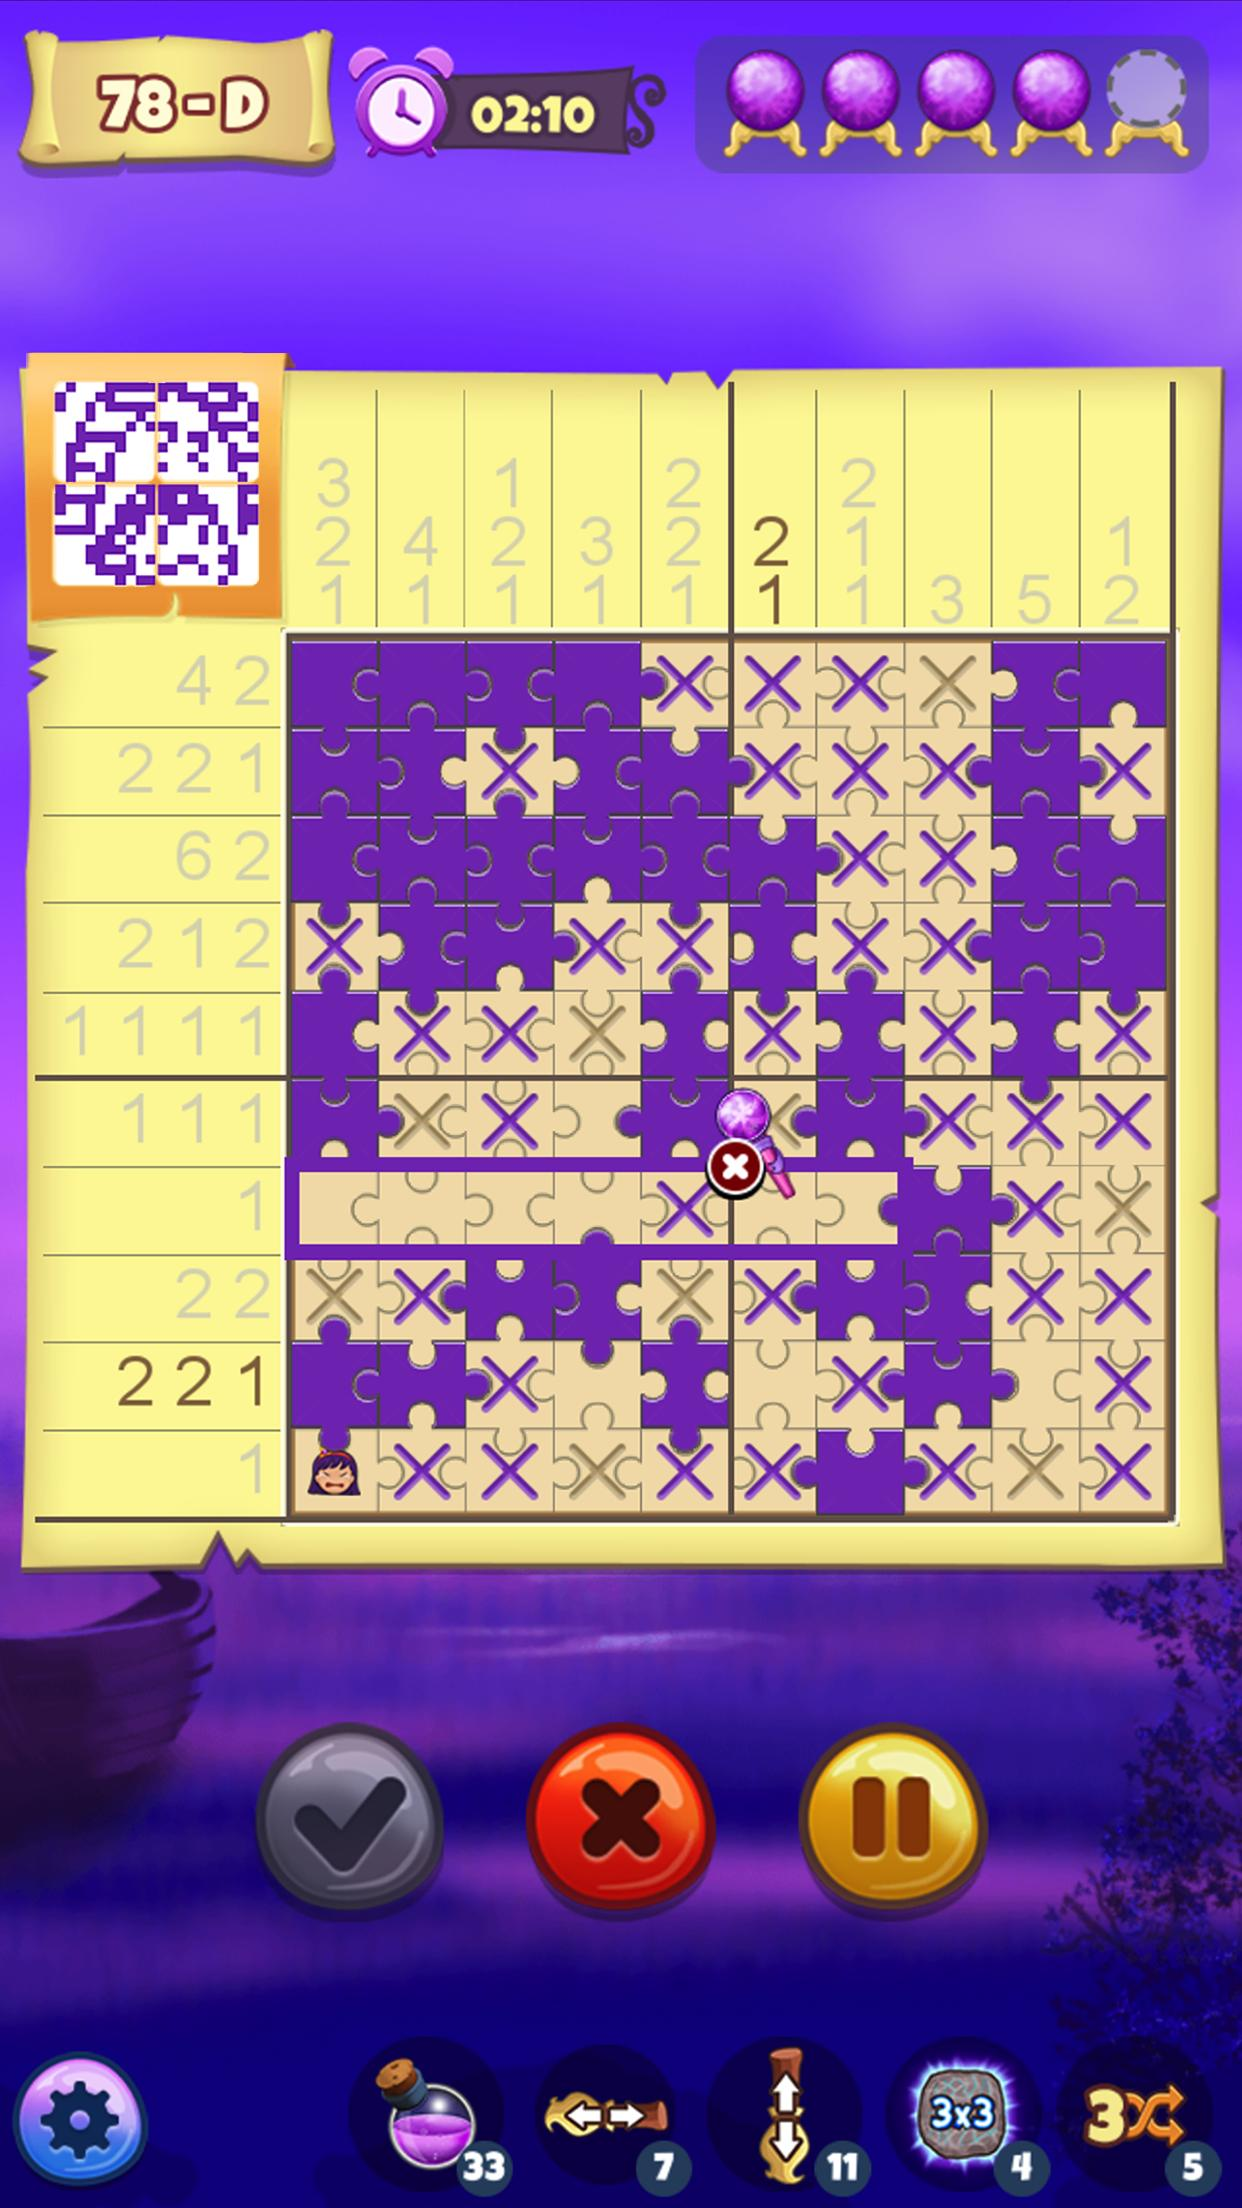 The Mystic Puzzland - Griddlers & Nonogram Puzzles 1.0.26 Screenshot 12